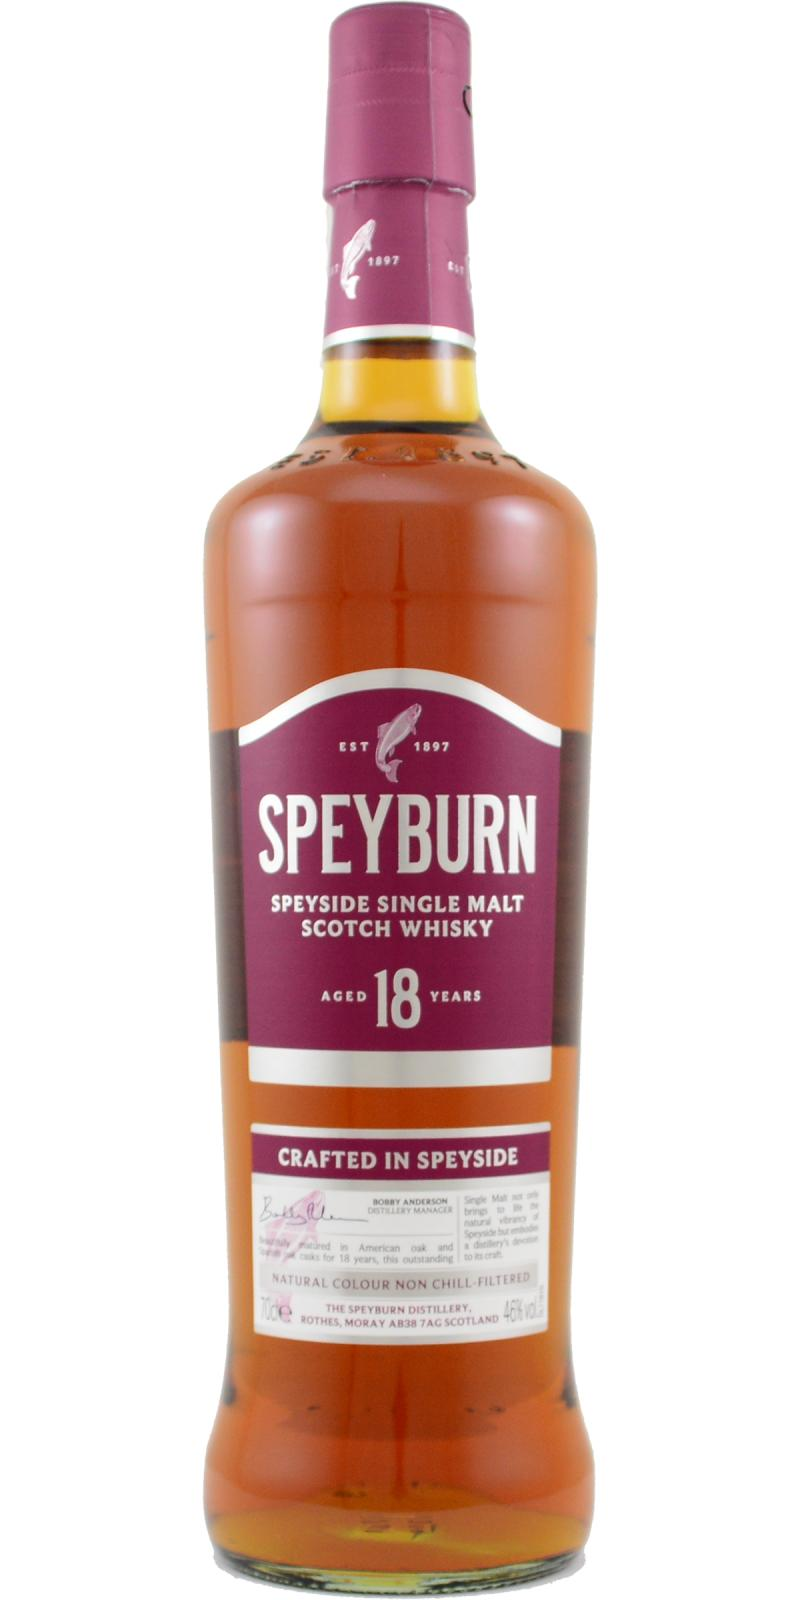 Speyburn 18-year-old